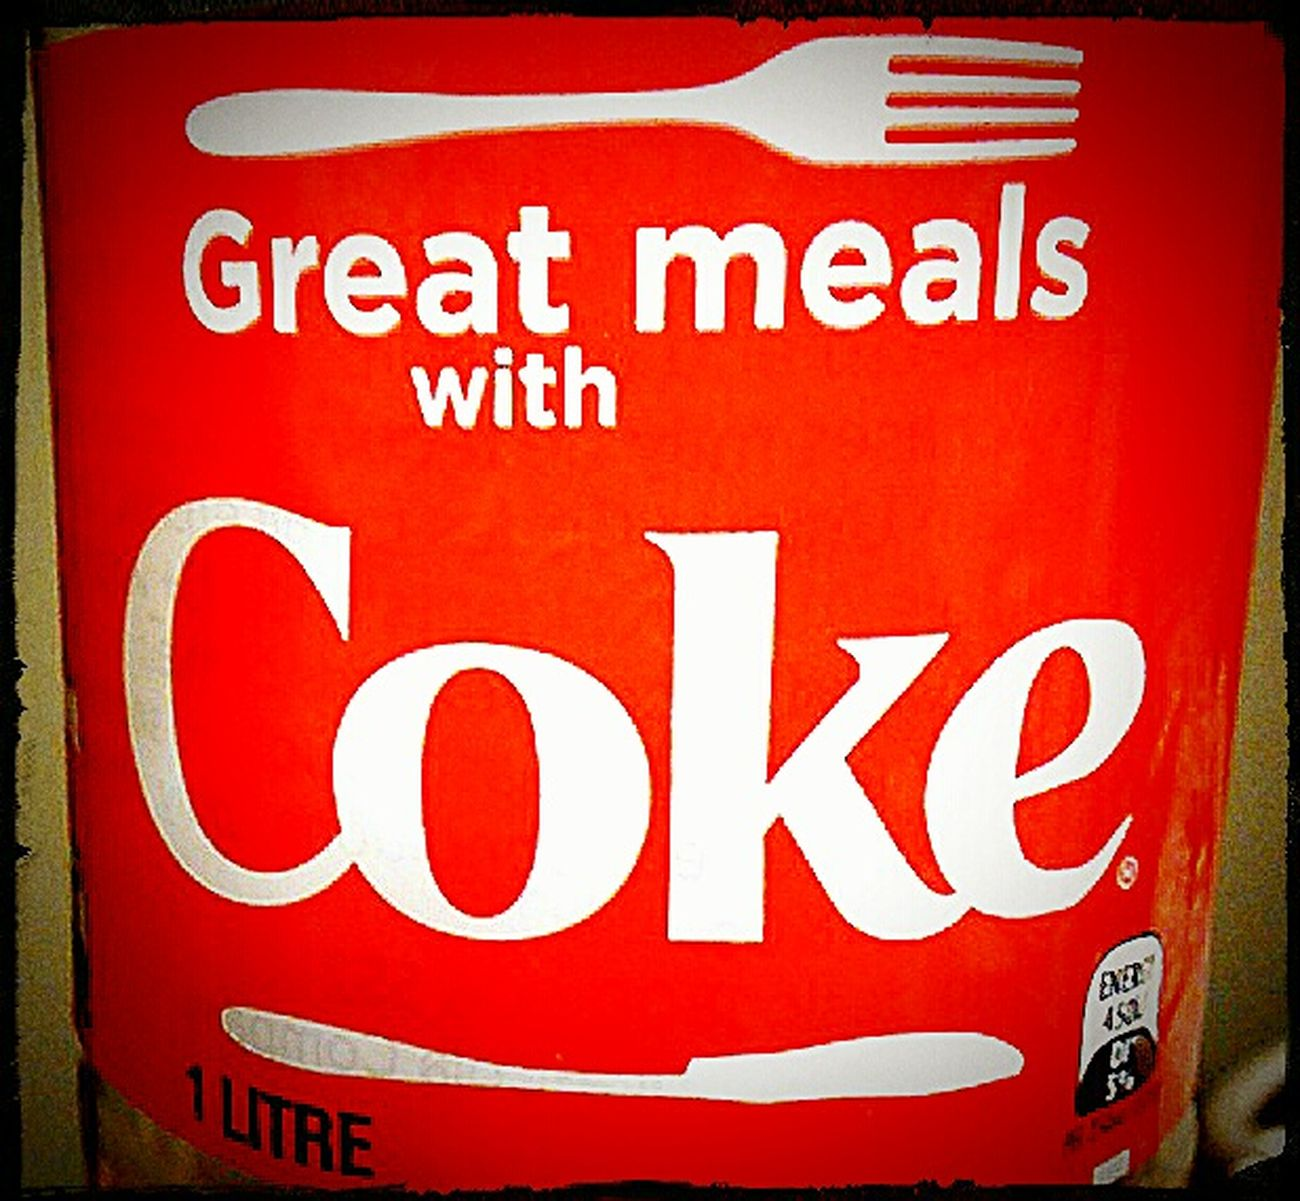 Great Meals With Coke The Dynamic Ribbon™ Coke Coca~Cola ® Coca Cola Coca-cola Coca-Cola, Label/logo/sign Coca~Cola Labeling Coca~cola Cocacola Enjoy Coca~Cola Coca Cola *-* Coke :) Drinking Coke Coca-Cola ❤ Refreshing Coca-cola Drink Coca~cola ® Drink Coca-cola Drink Coke Labels Coke Bottles Coke Bottle Coca Cola ❤️ Coca Cola ✌ Cocacola ✌️